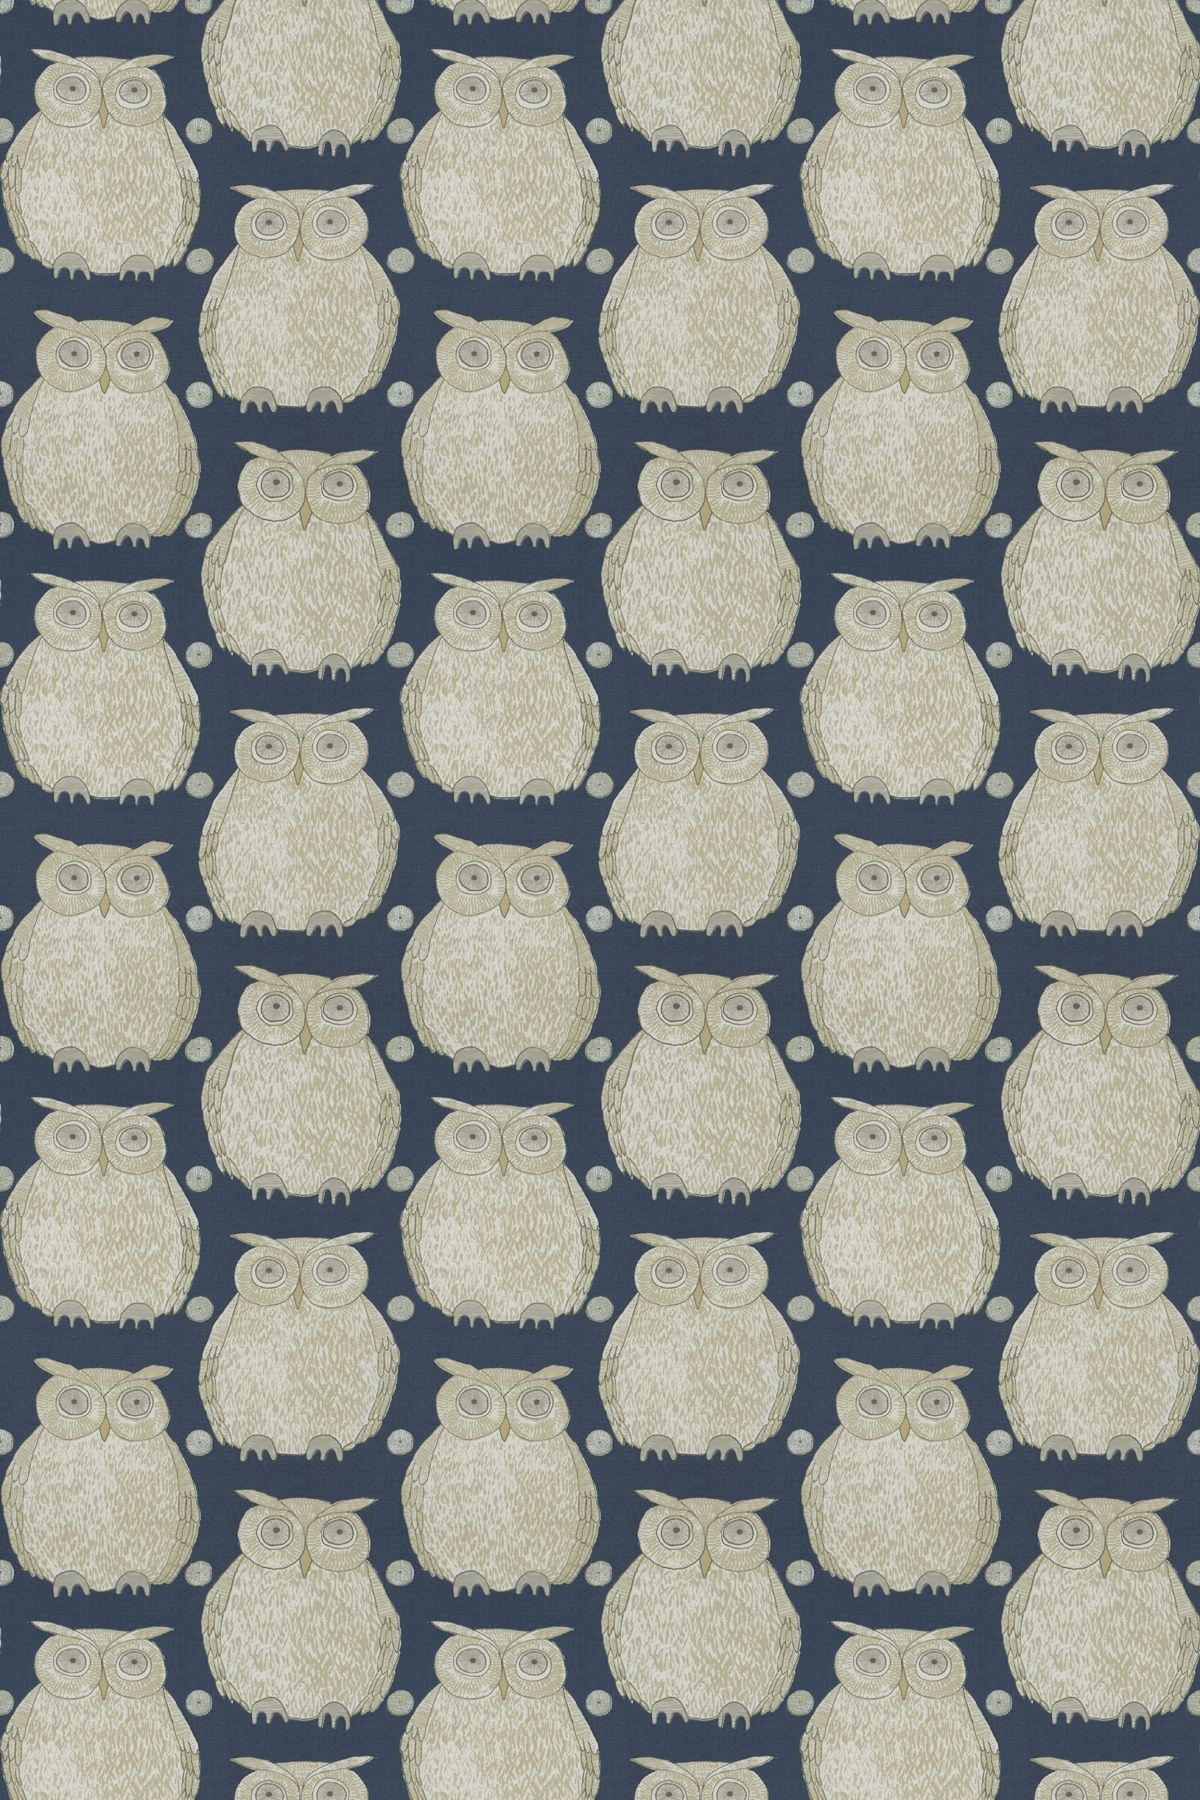 Tawny Owl (Tawny/004) - Blendworth Fabrics - A cute and quirky owl motif, in beige on cream with metallic detailing, a rich mid blue background. Linen mix fabric. Please request sample for true colour match.